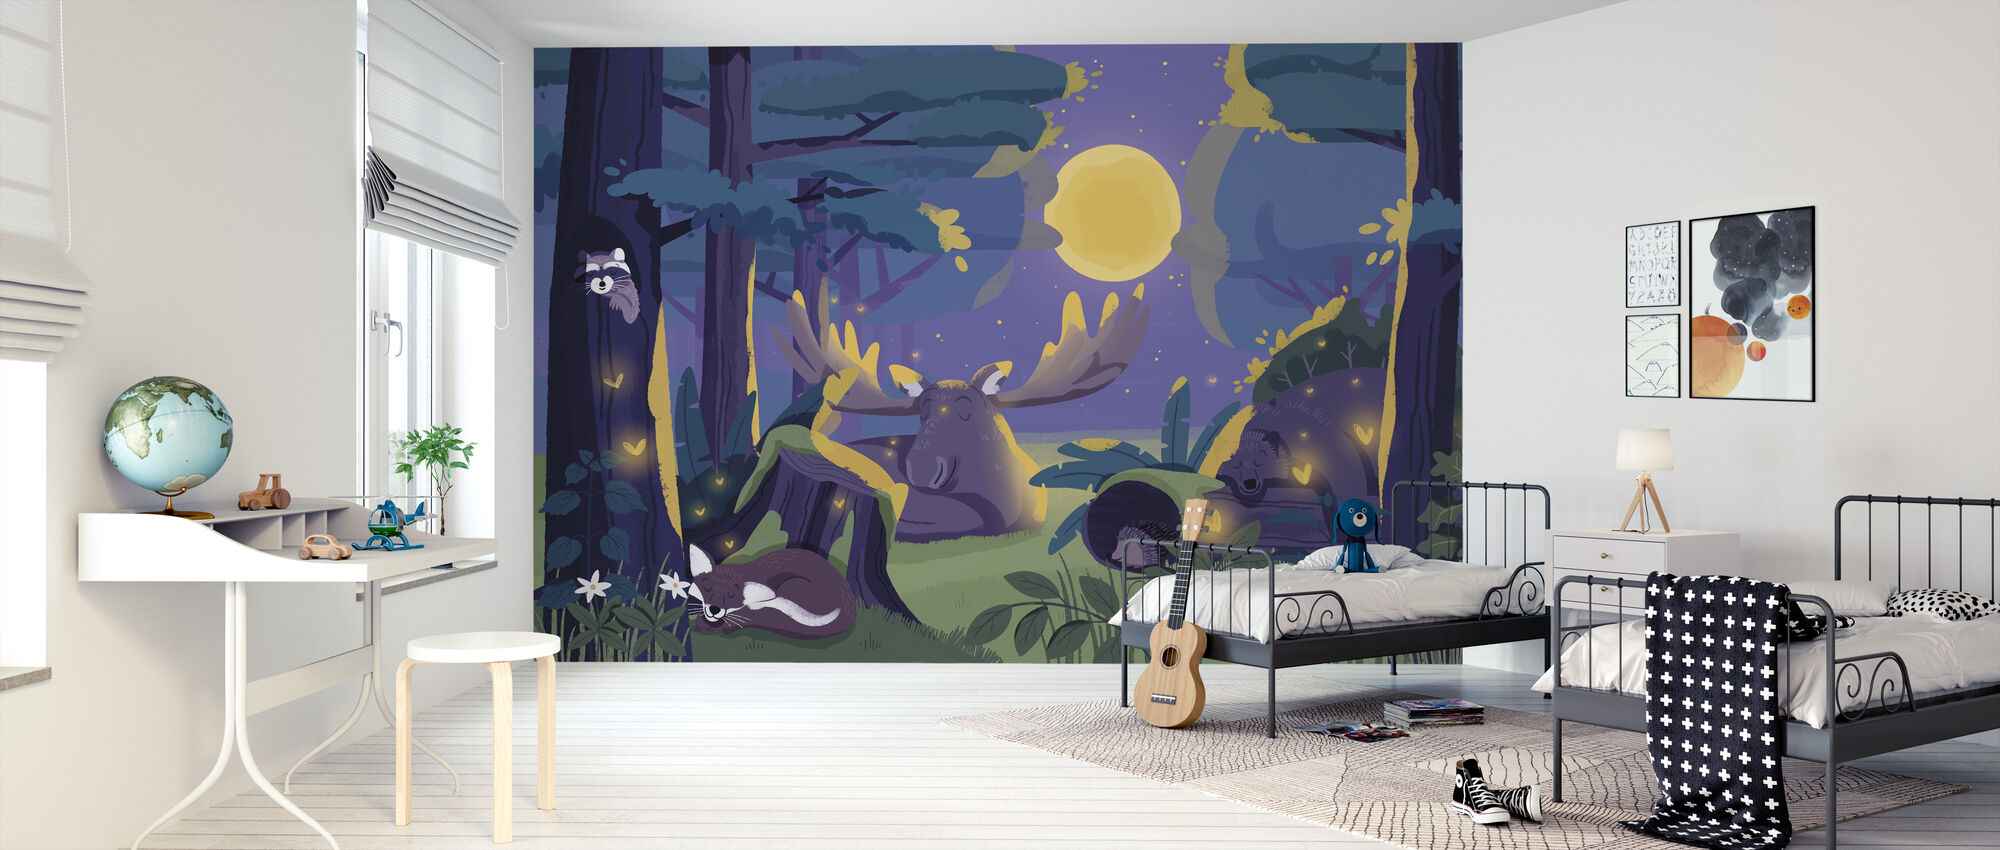 Sleepy Forest - Wallpaper - Kids Room